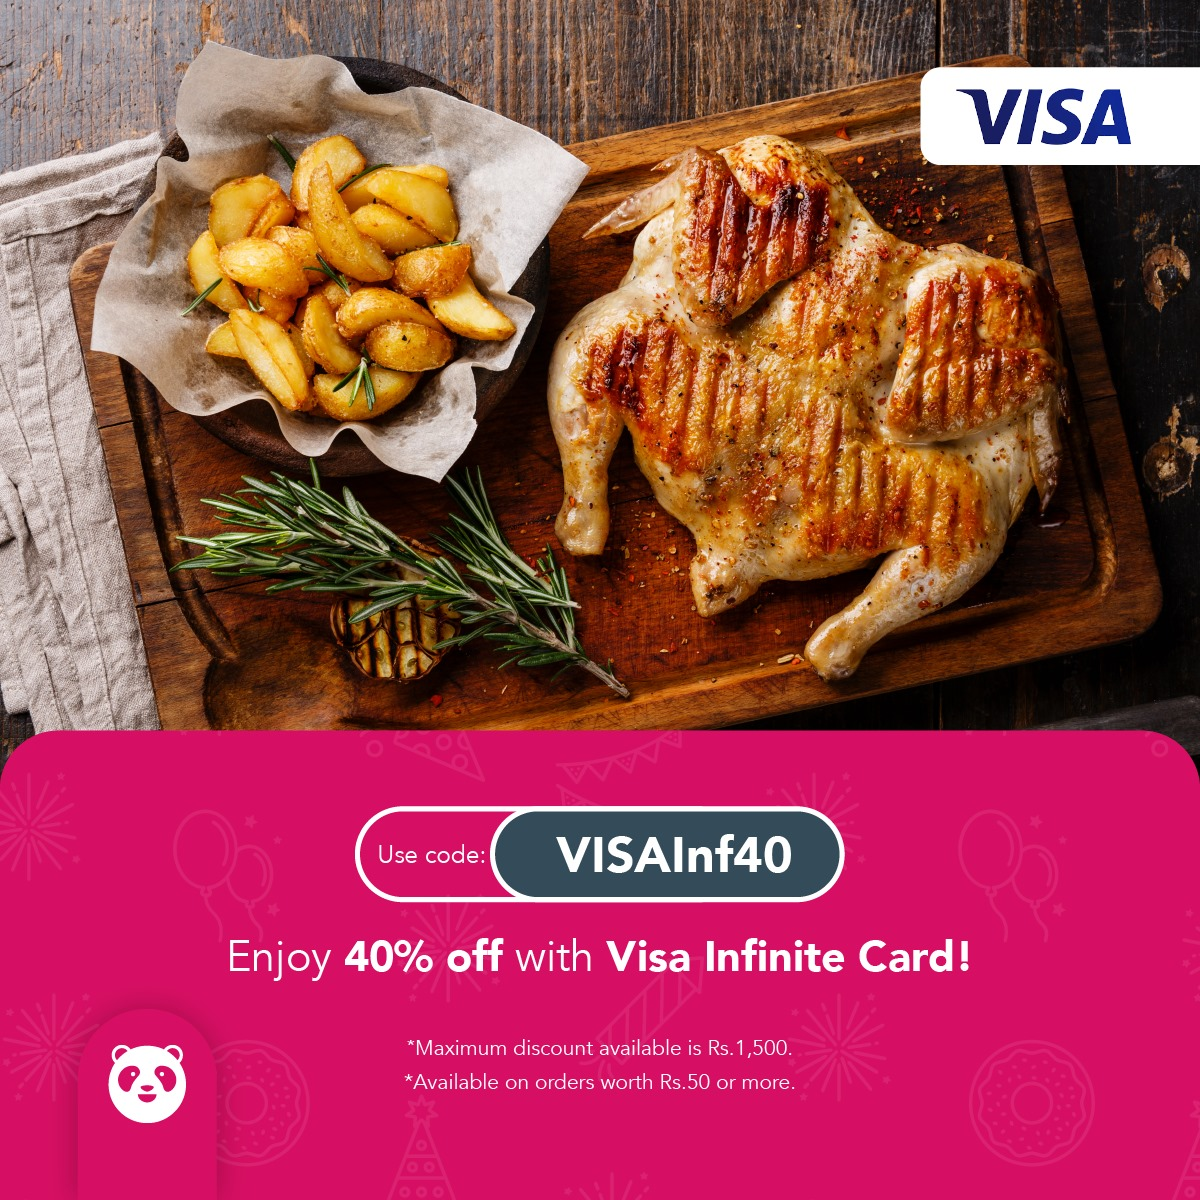 Foodpanda - Visa Infinite